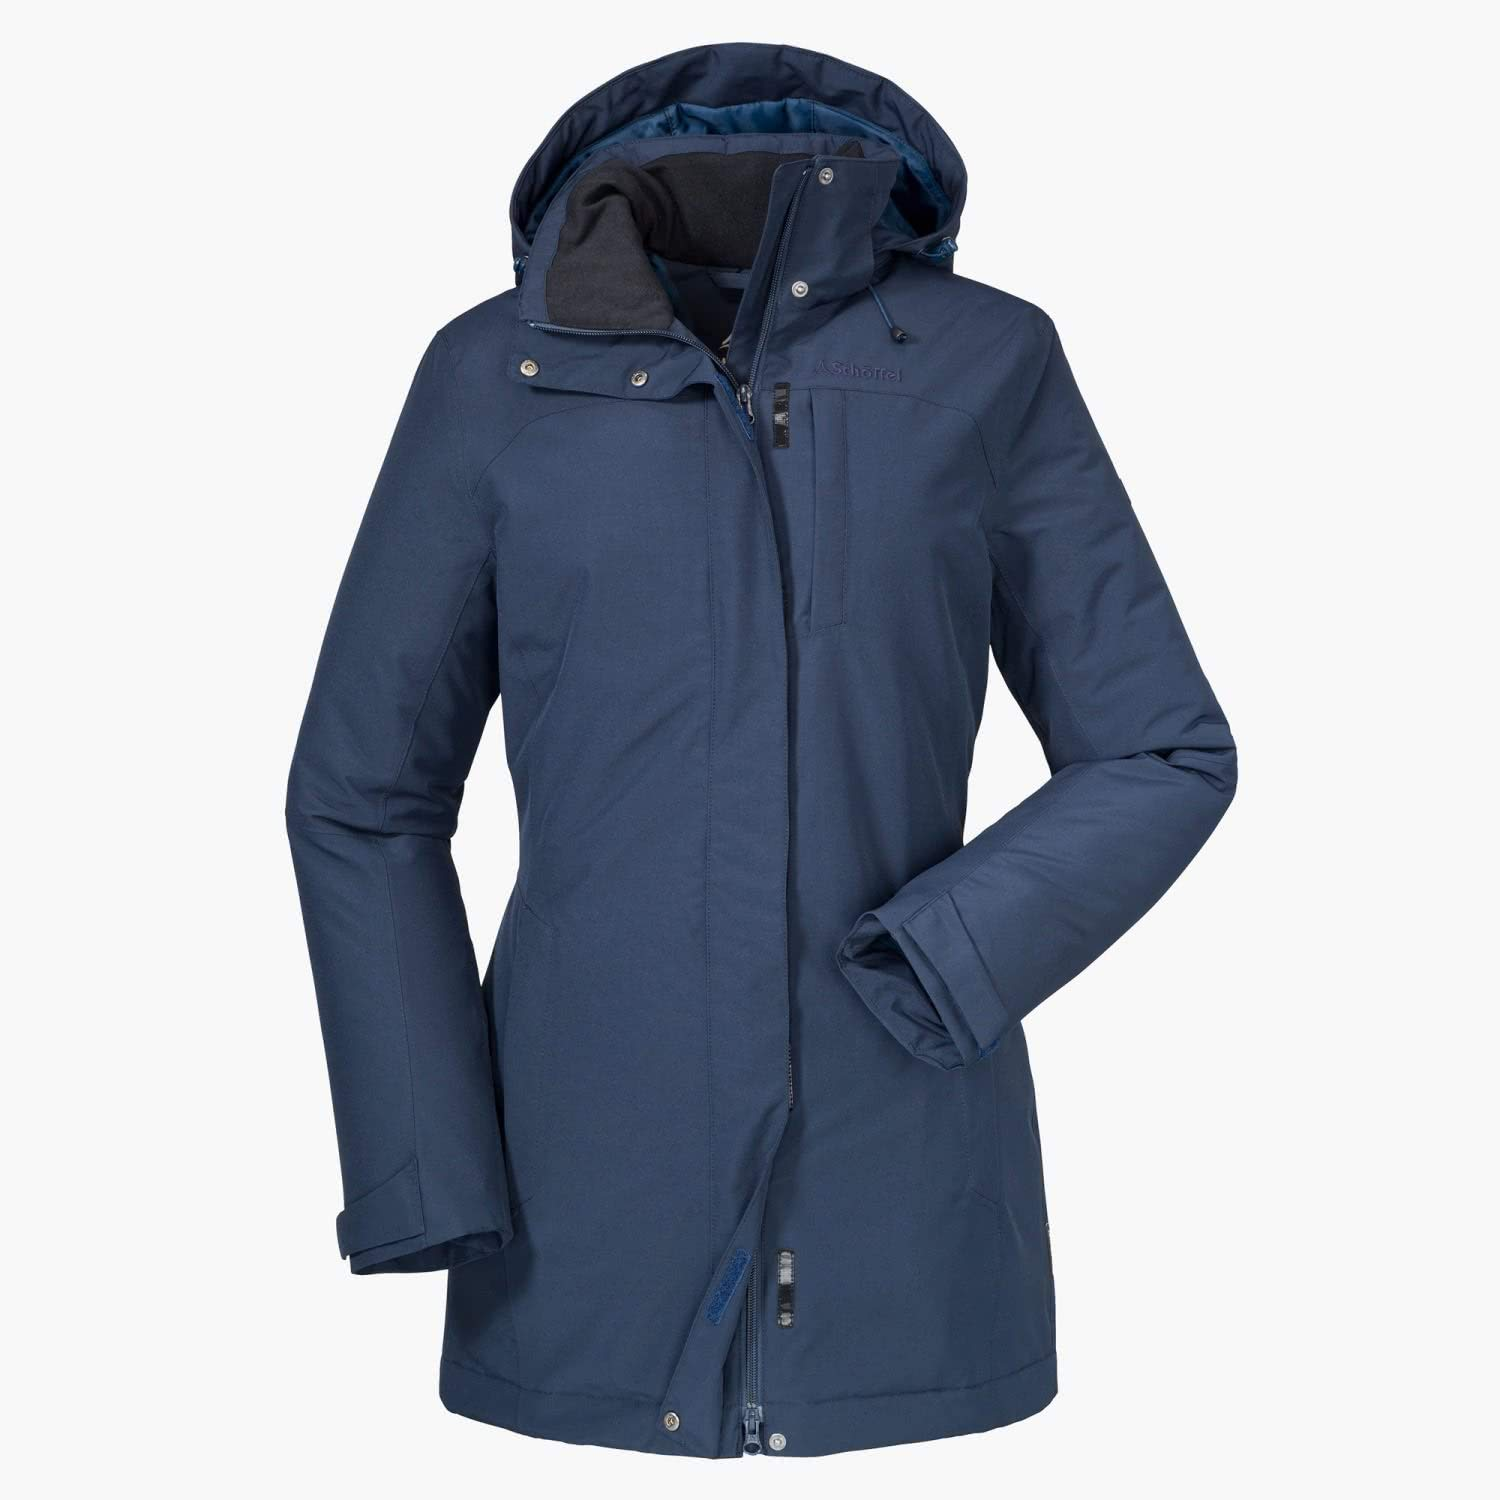 Schöffel Damen Insulated Jacket Portillo Jacken